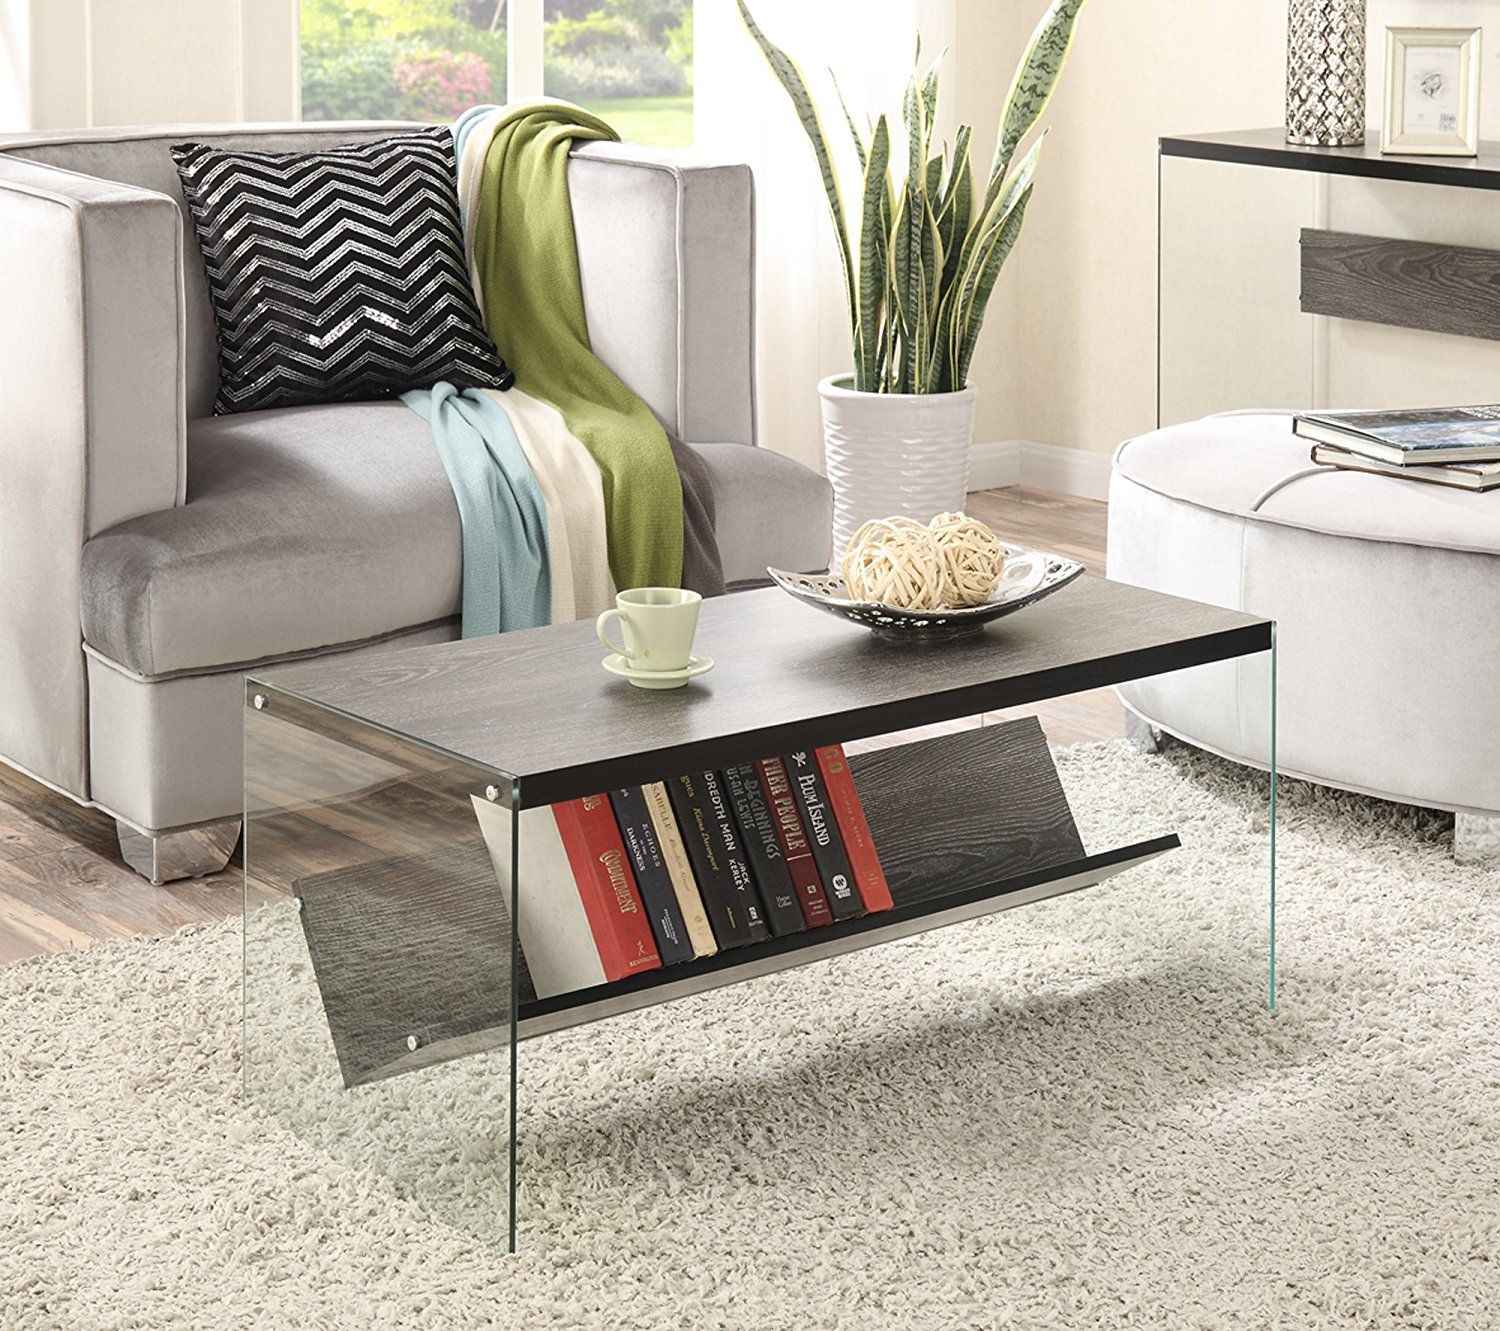 Cheap Coffee Tables The Ultimate Guide To Coffee Tables Under 100 Coffee Table Cheap Coffee Table Coffee Table With Storage